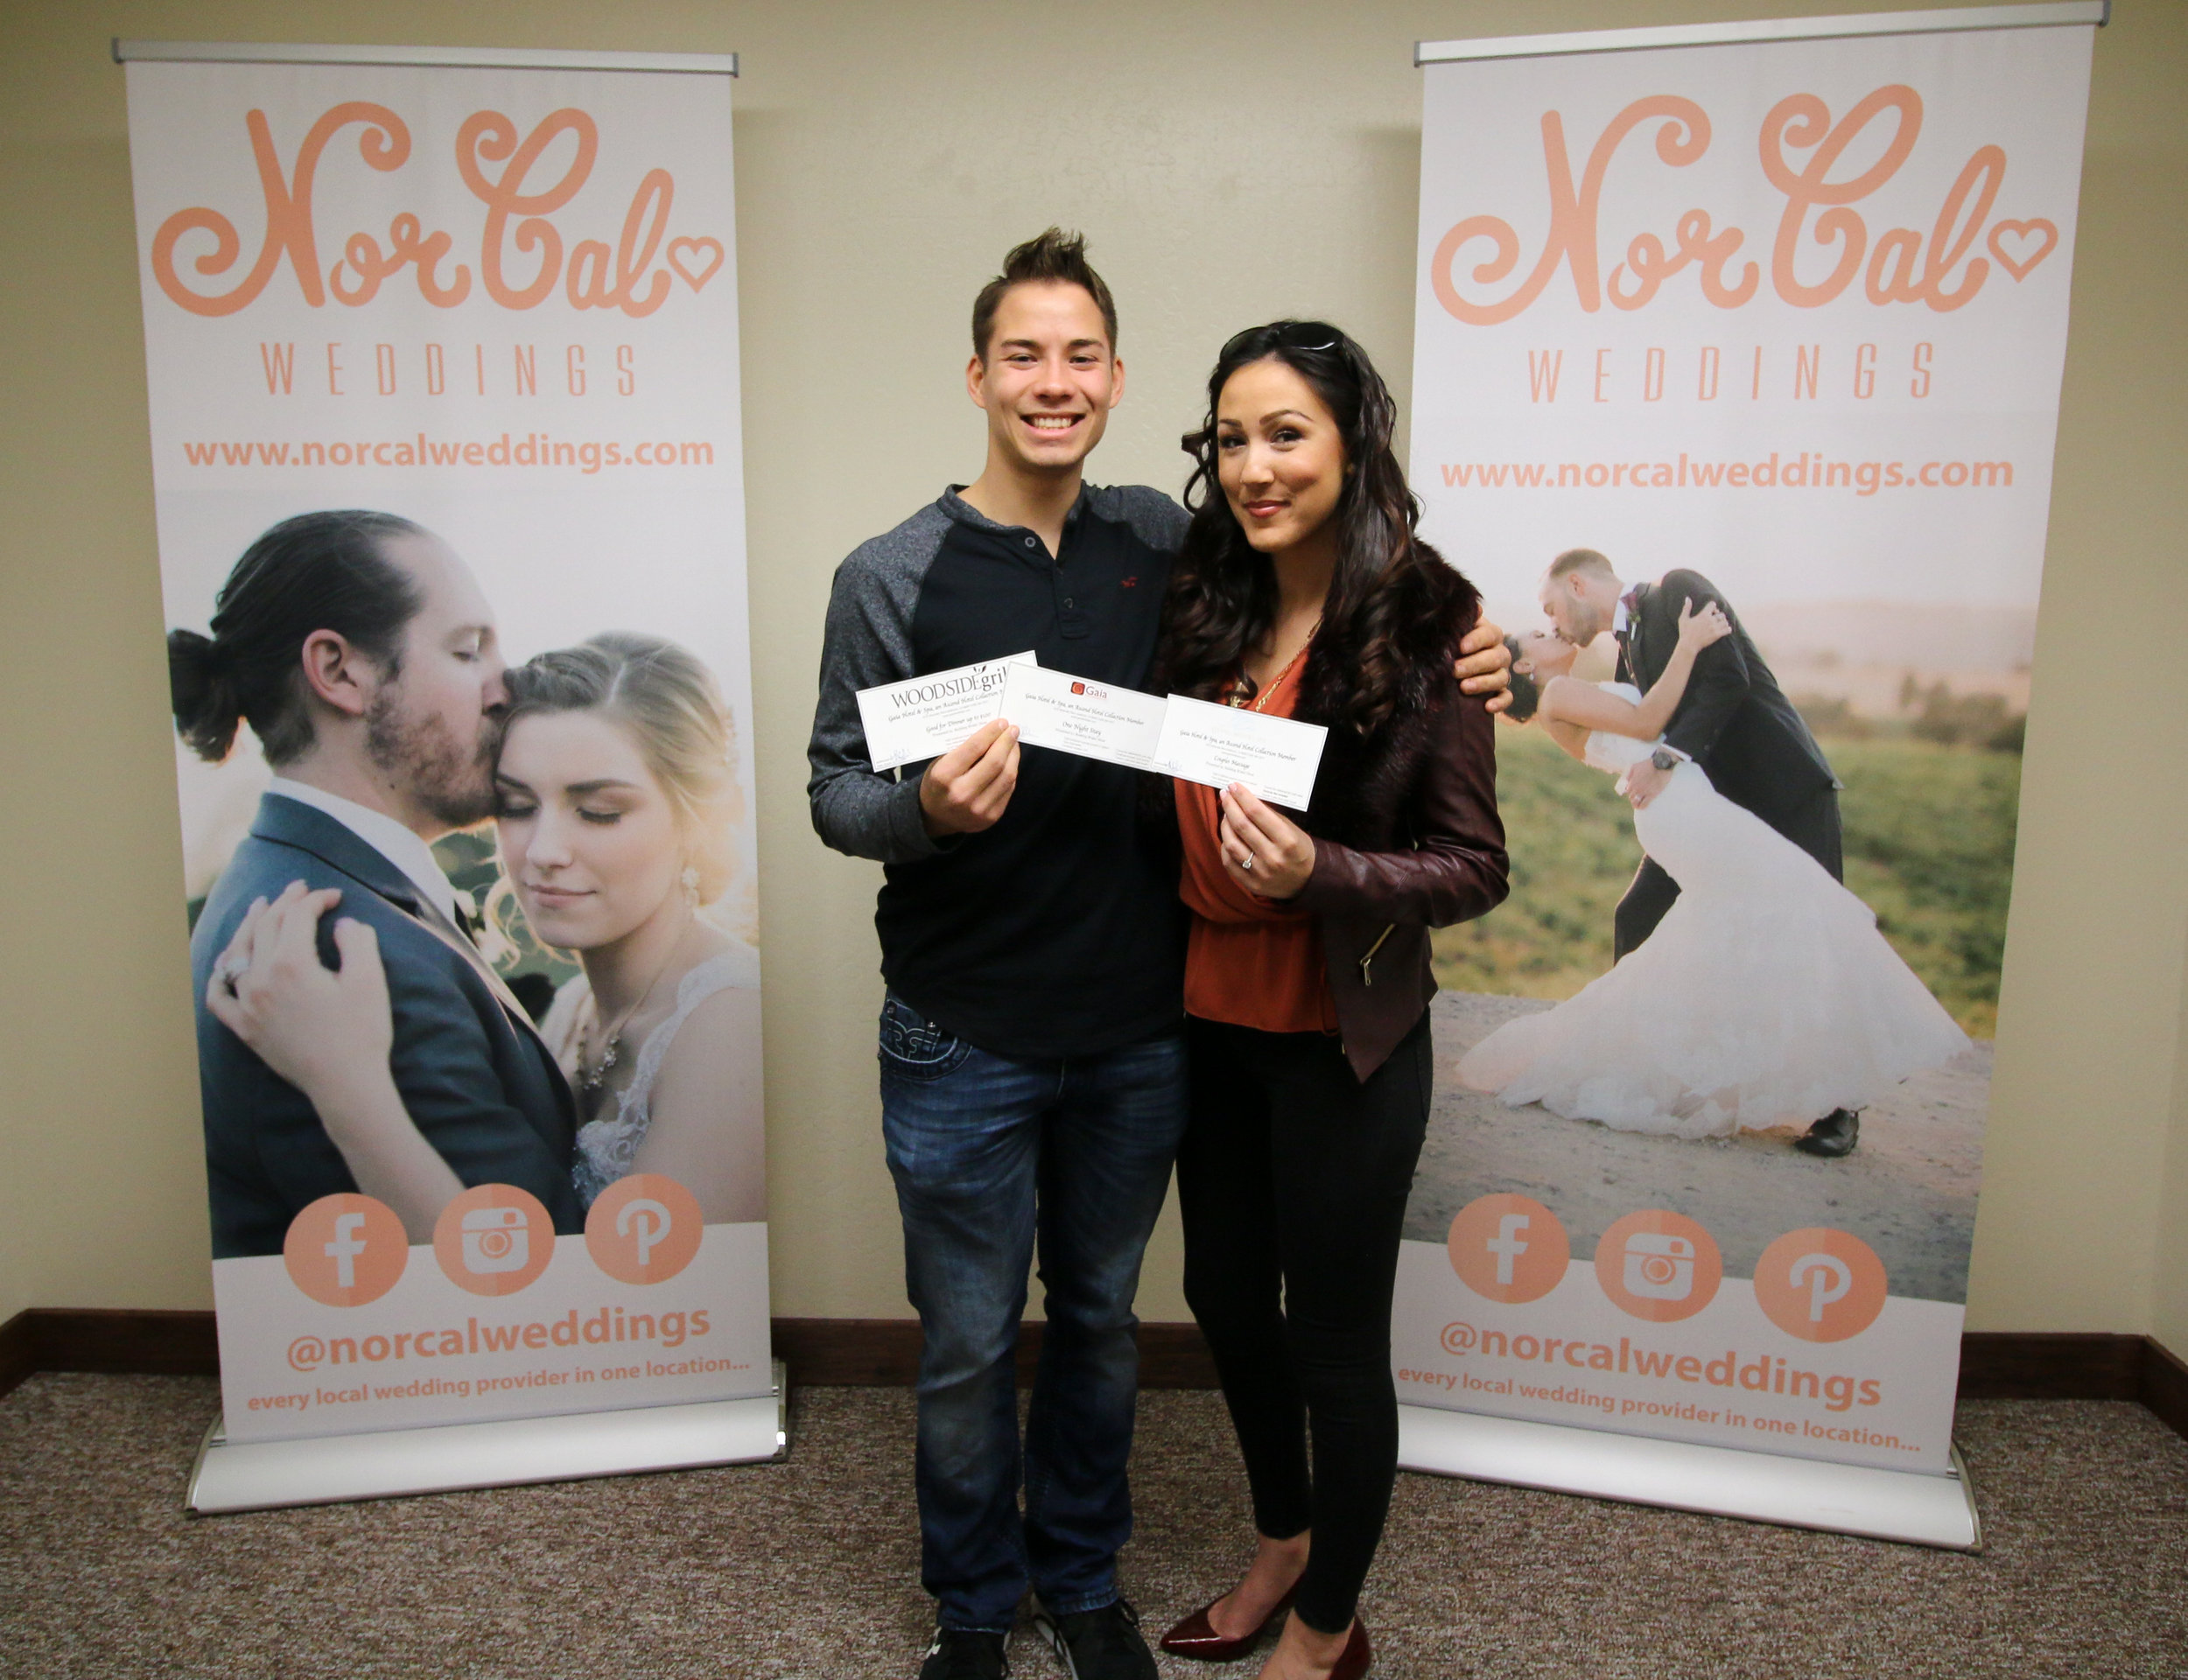 Congratulations to Christian & Mikala!!! They are the winners of the Gift Certificates from  Gaia Hotel & Spa !!! Christian & Mikala are getting married on 9/1/2017 & we wish them a happy wedding & a beautiful life together!!!